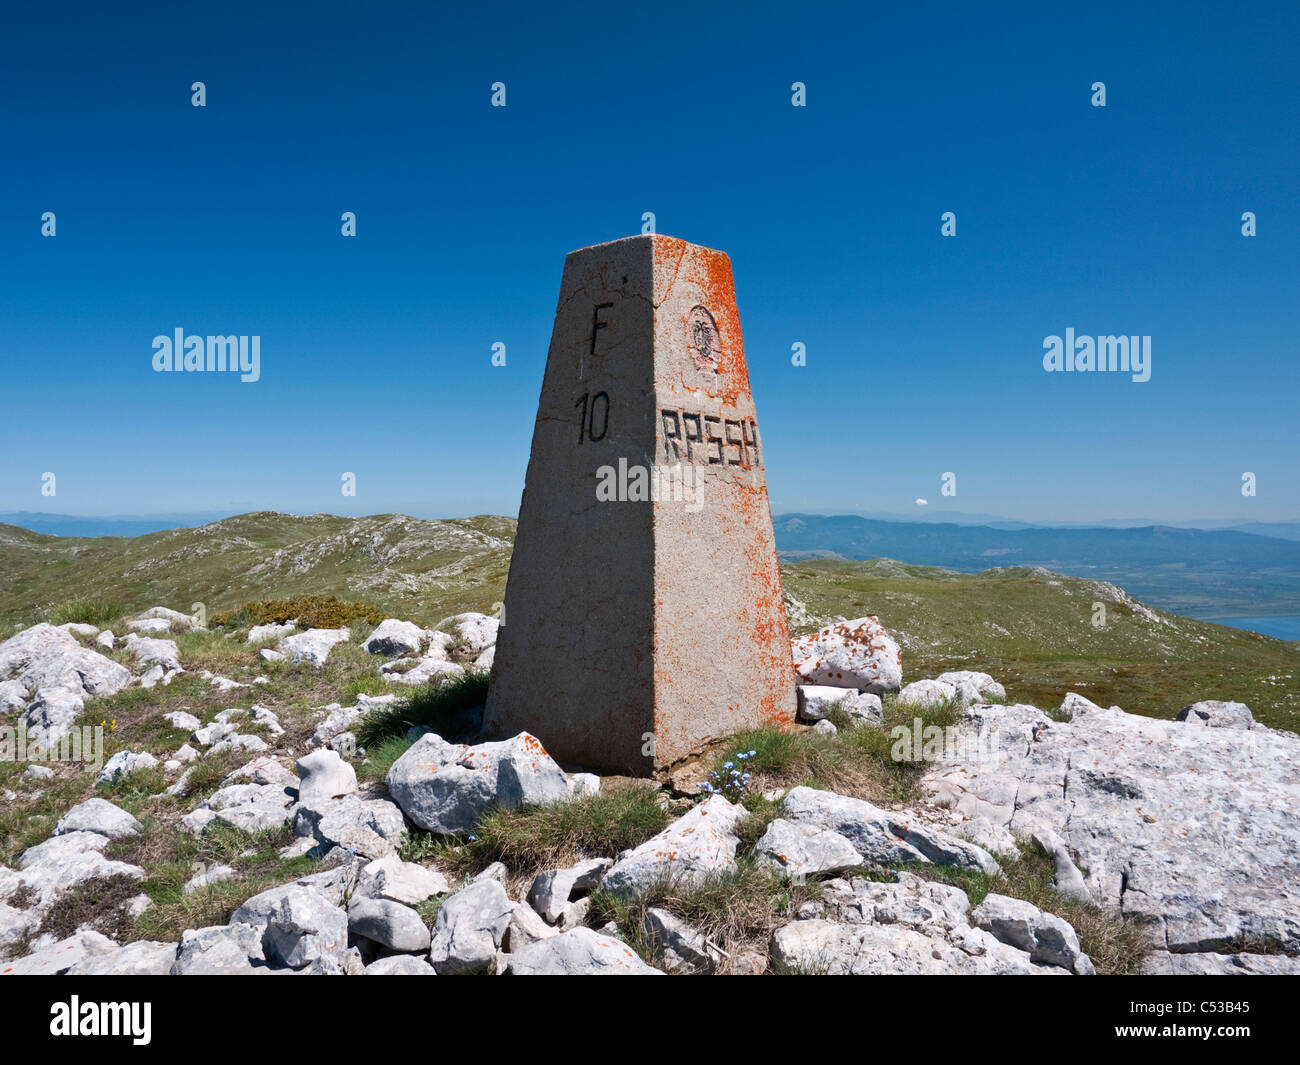 Kota F10 - at 2265m the highest point in Galičica National Park, Macedonia, forming the border with Albania - Stock Image